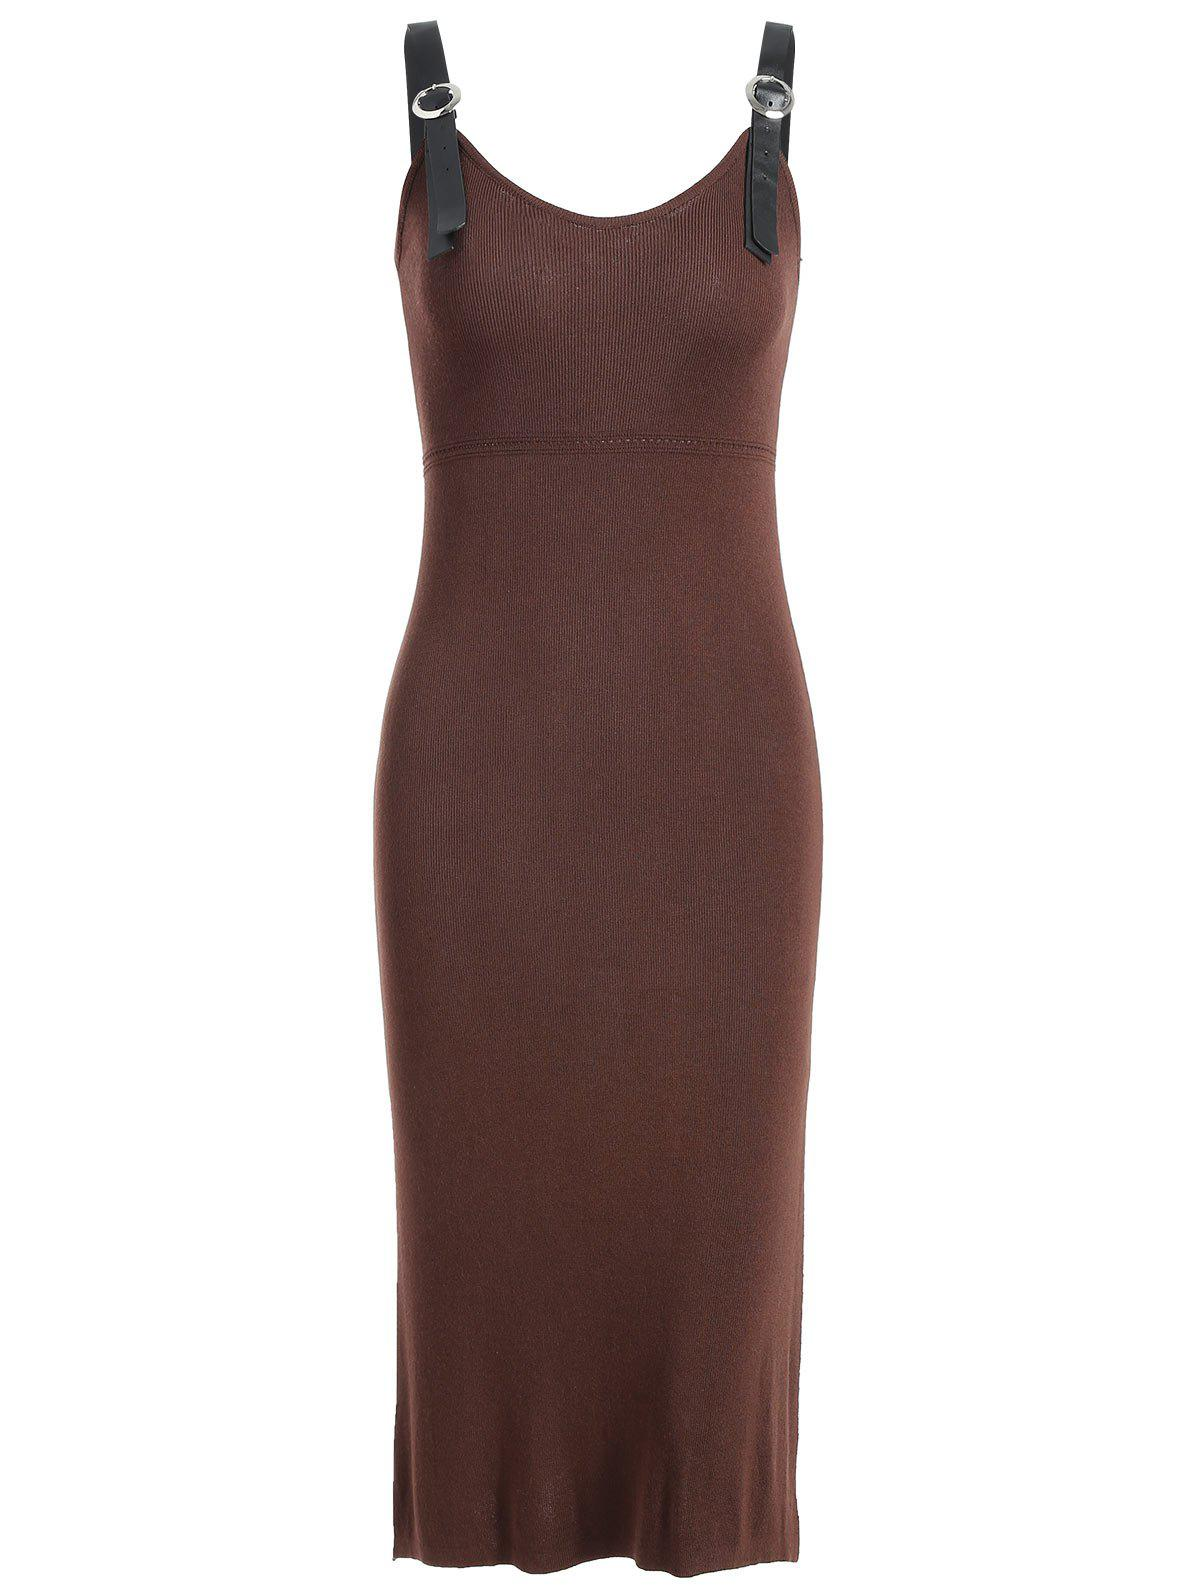 Knit Bodycon Knee Length Dress - COFFEE M